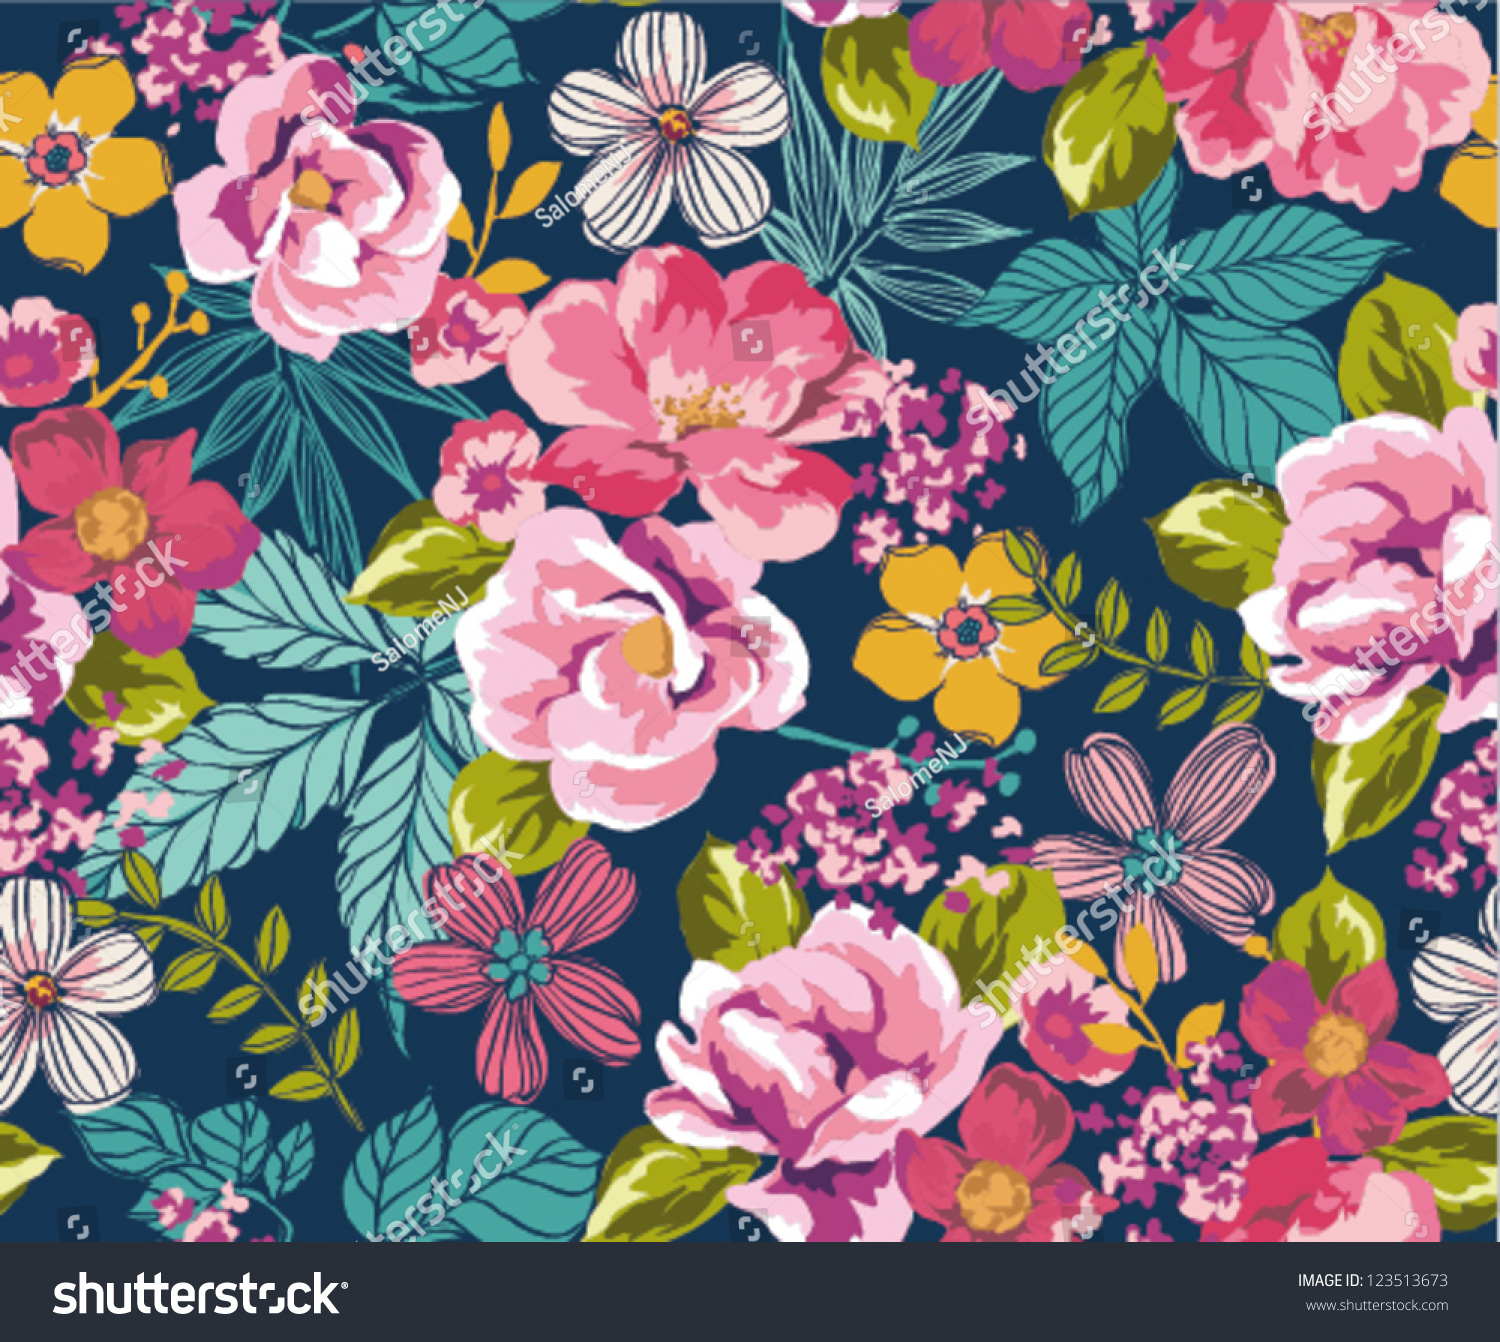 Seamless Summer Tropical Floral Background Vector Stock Image